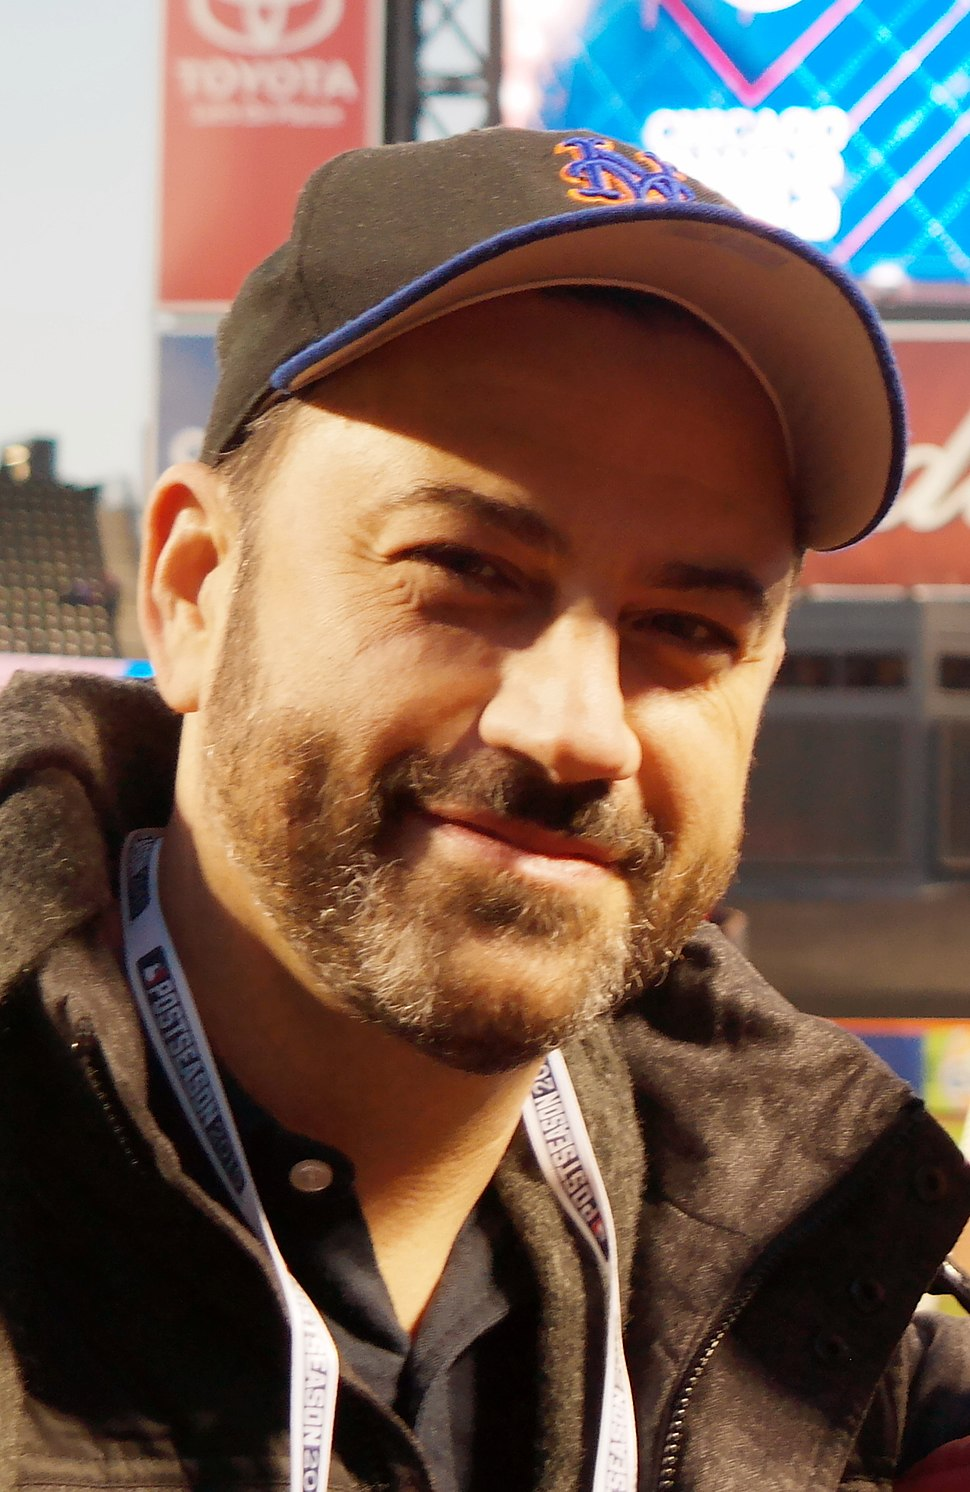 Jimmy Kimmel and Cousin Sal (cropped)